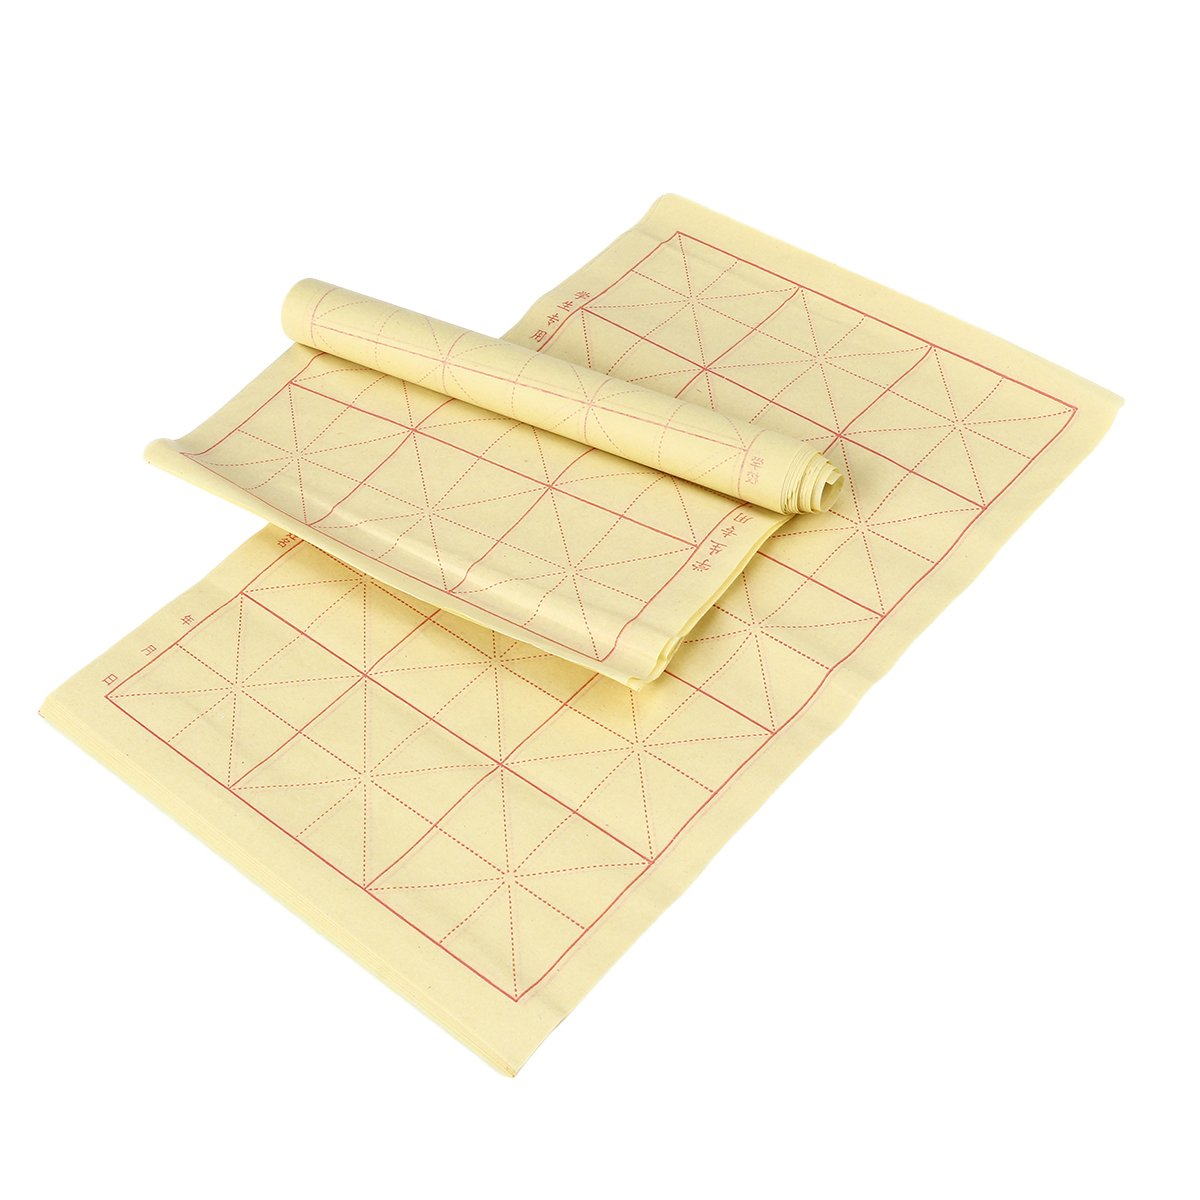 Nuolux 15 Grid Chinese Calligraphy Paper For Practice